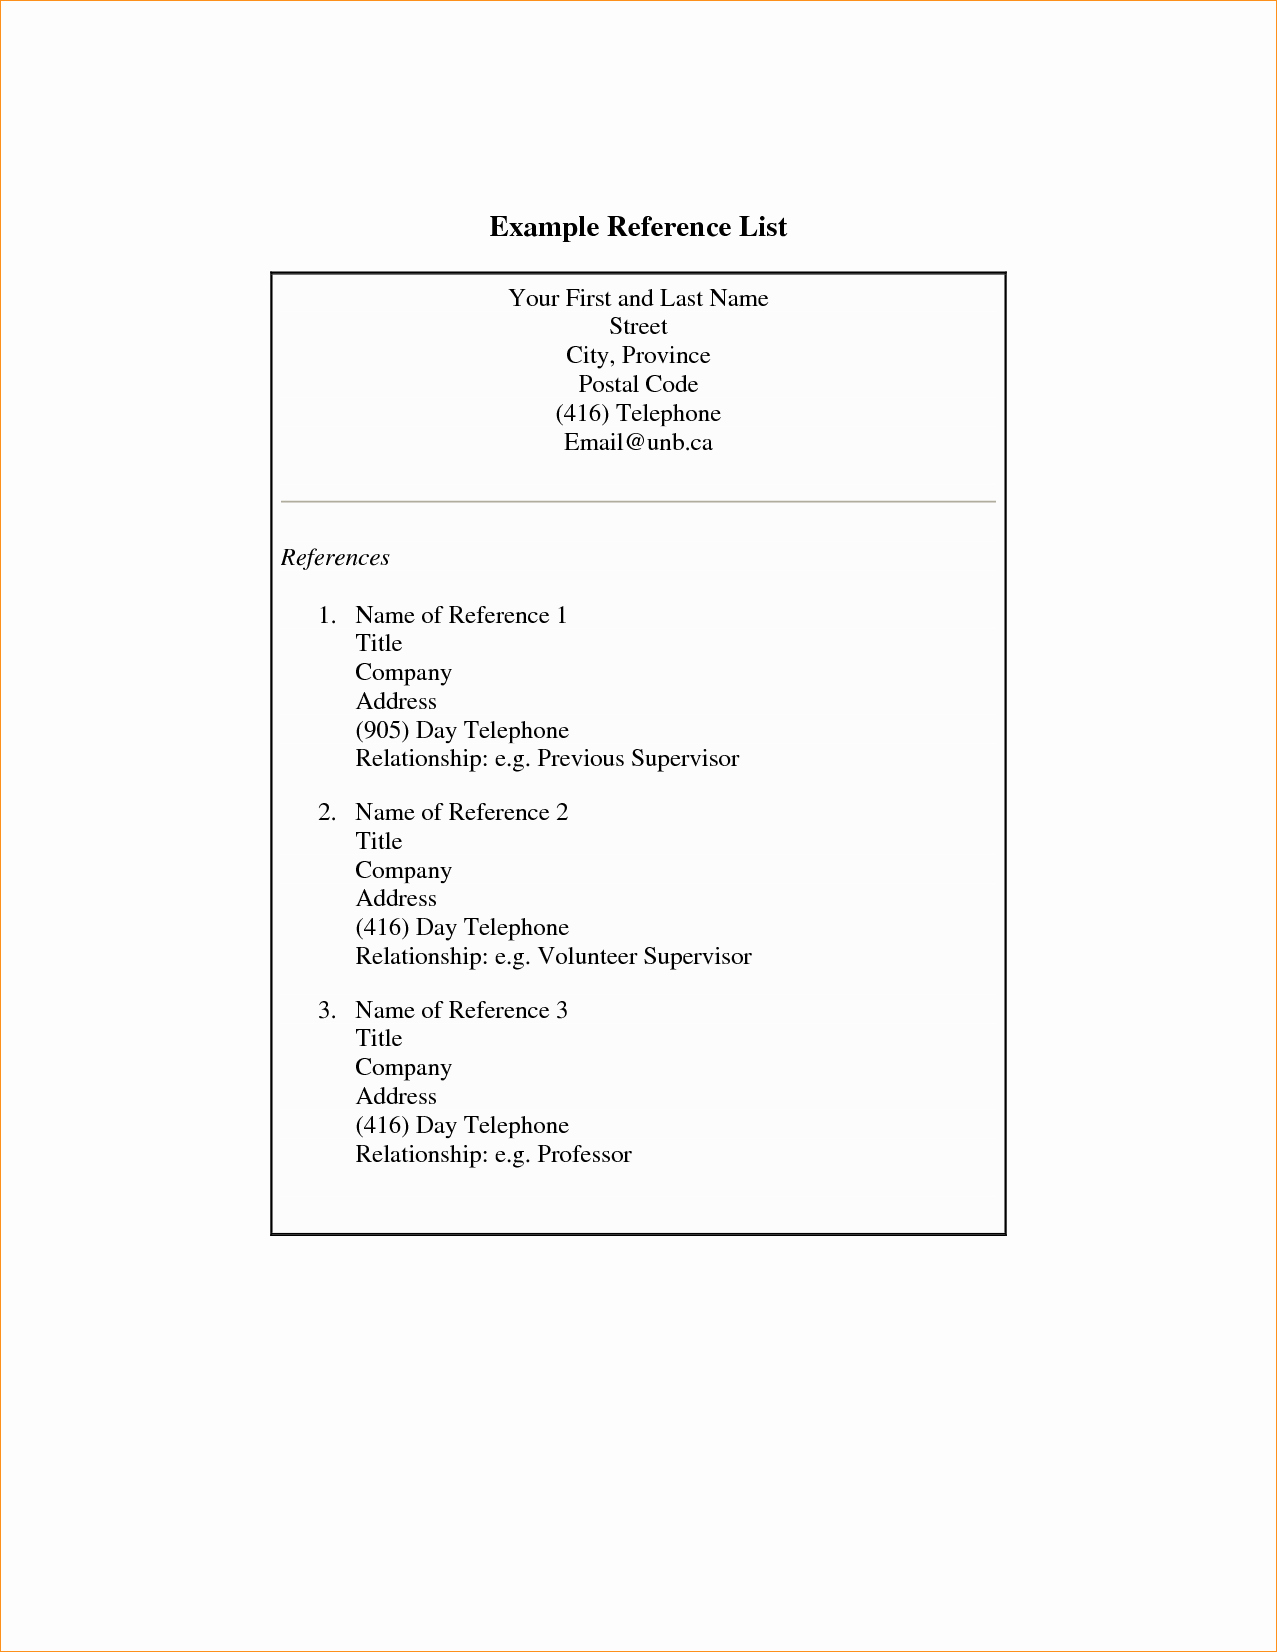 Example Of Professional Reference List Lovely 3 Professional References Examples Business Proposal